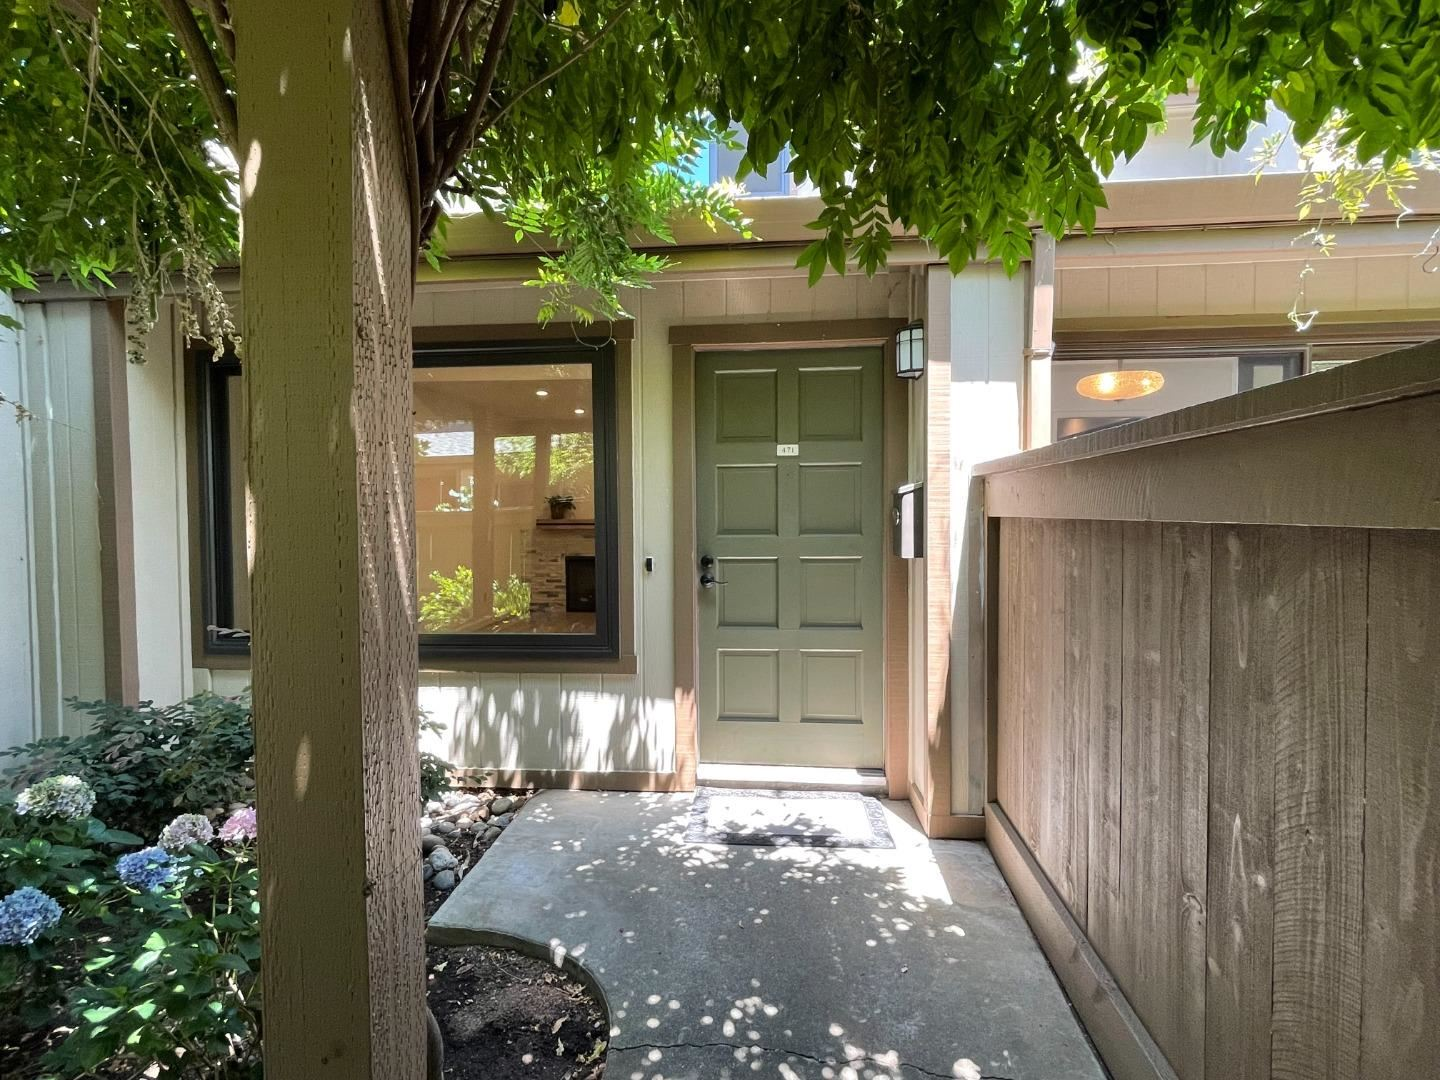 Photo for 49 Showers Dr. #L471, MOUNTAIN VIEW, CA 94040 (MLS # ML81854721)